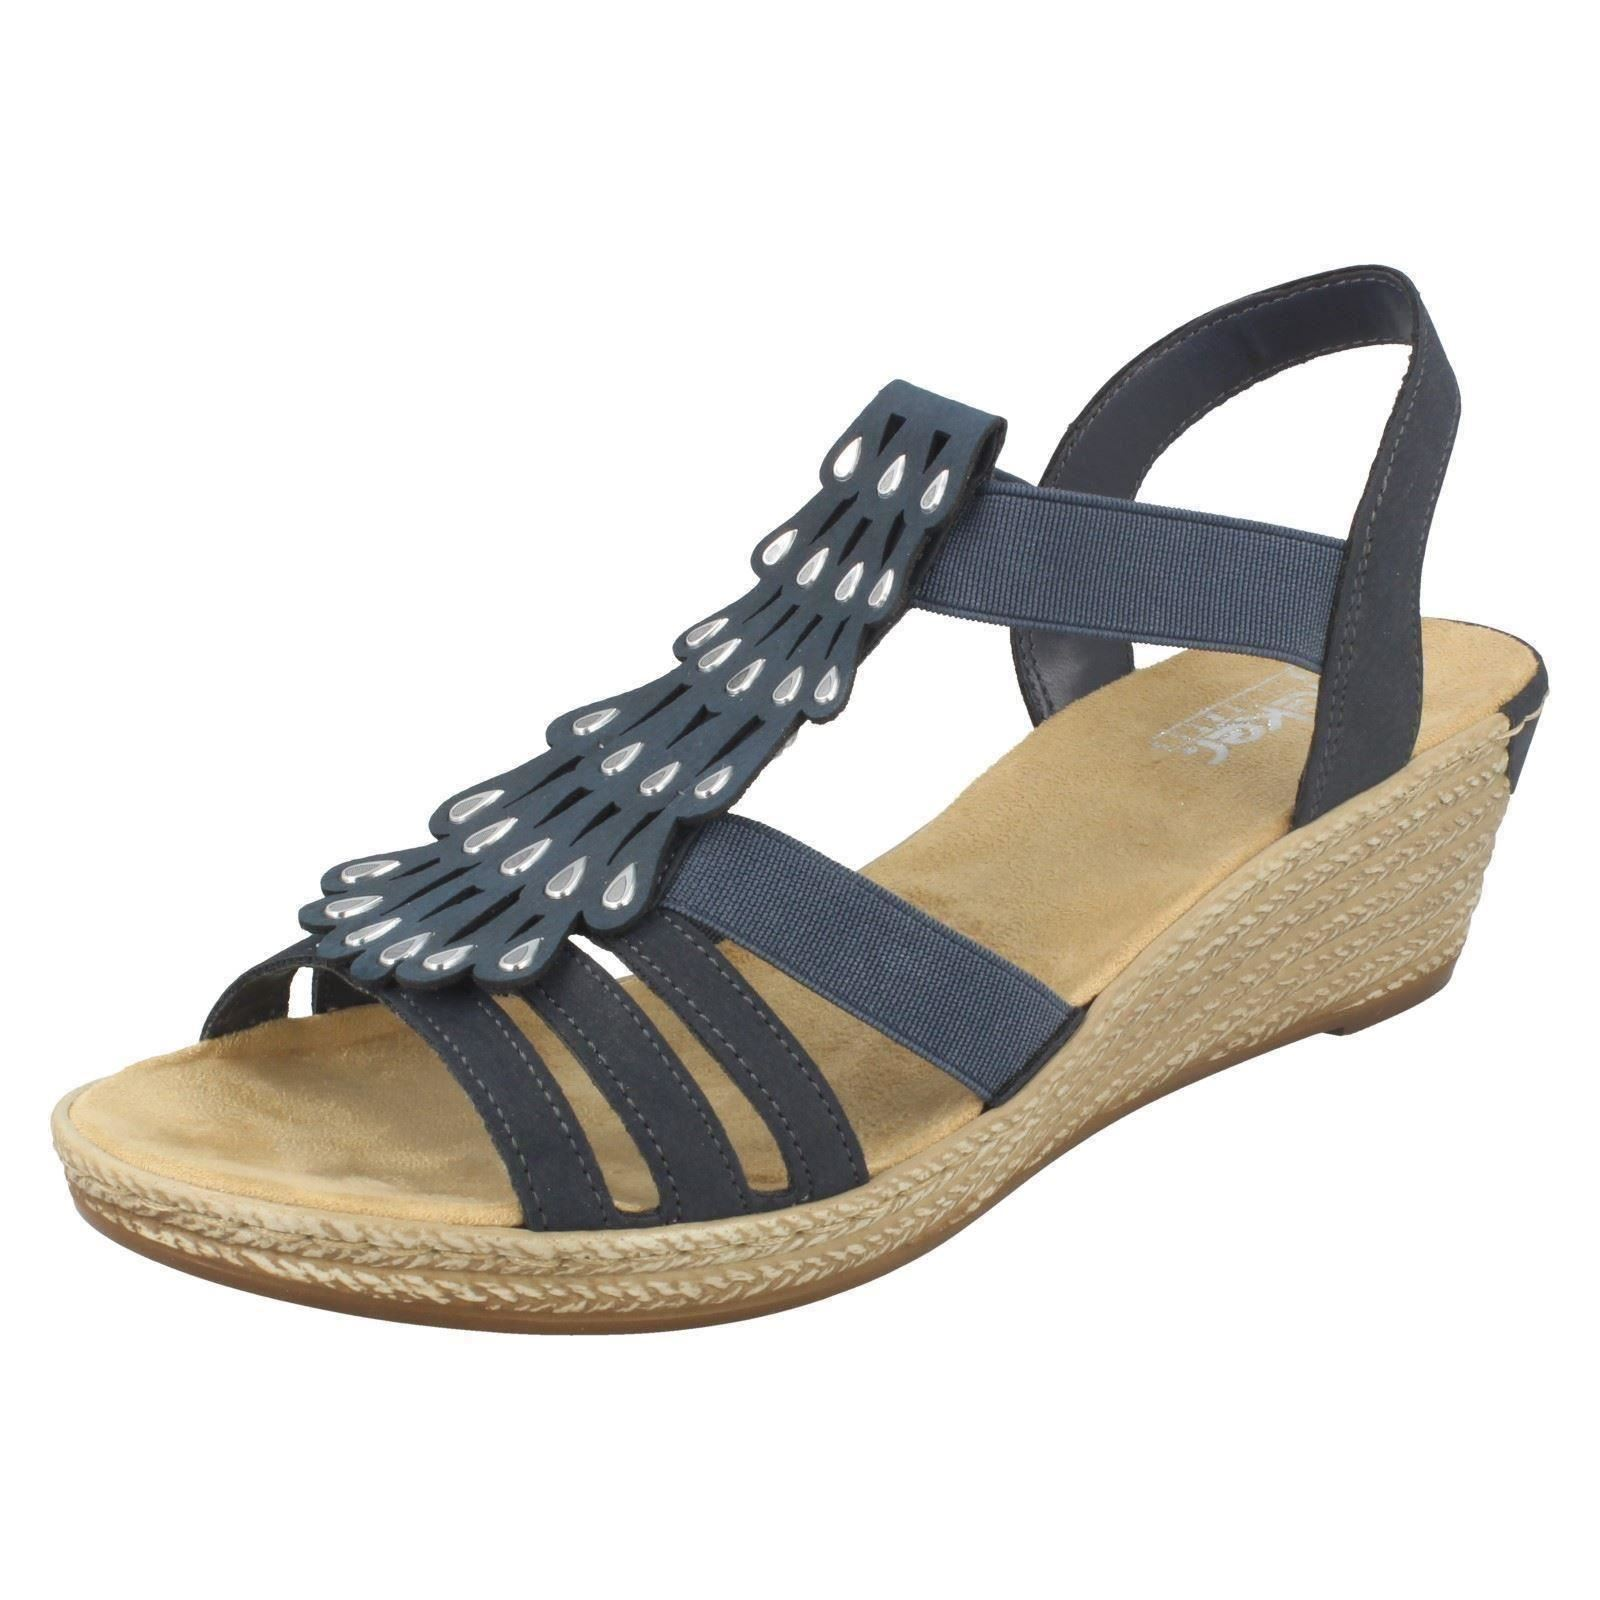 434afead6b3e Rieker 62436 - 14 Pazifik (navy) Womens Sandals 36 EU. About this product.  Picture 1 of 8  Picture 2 of 8 ...